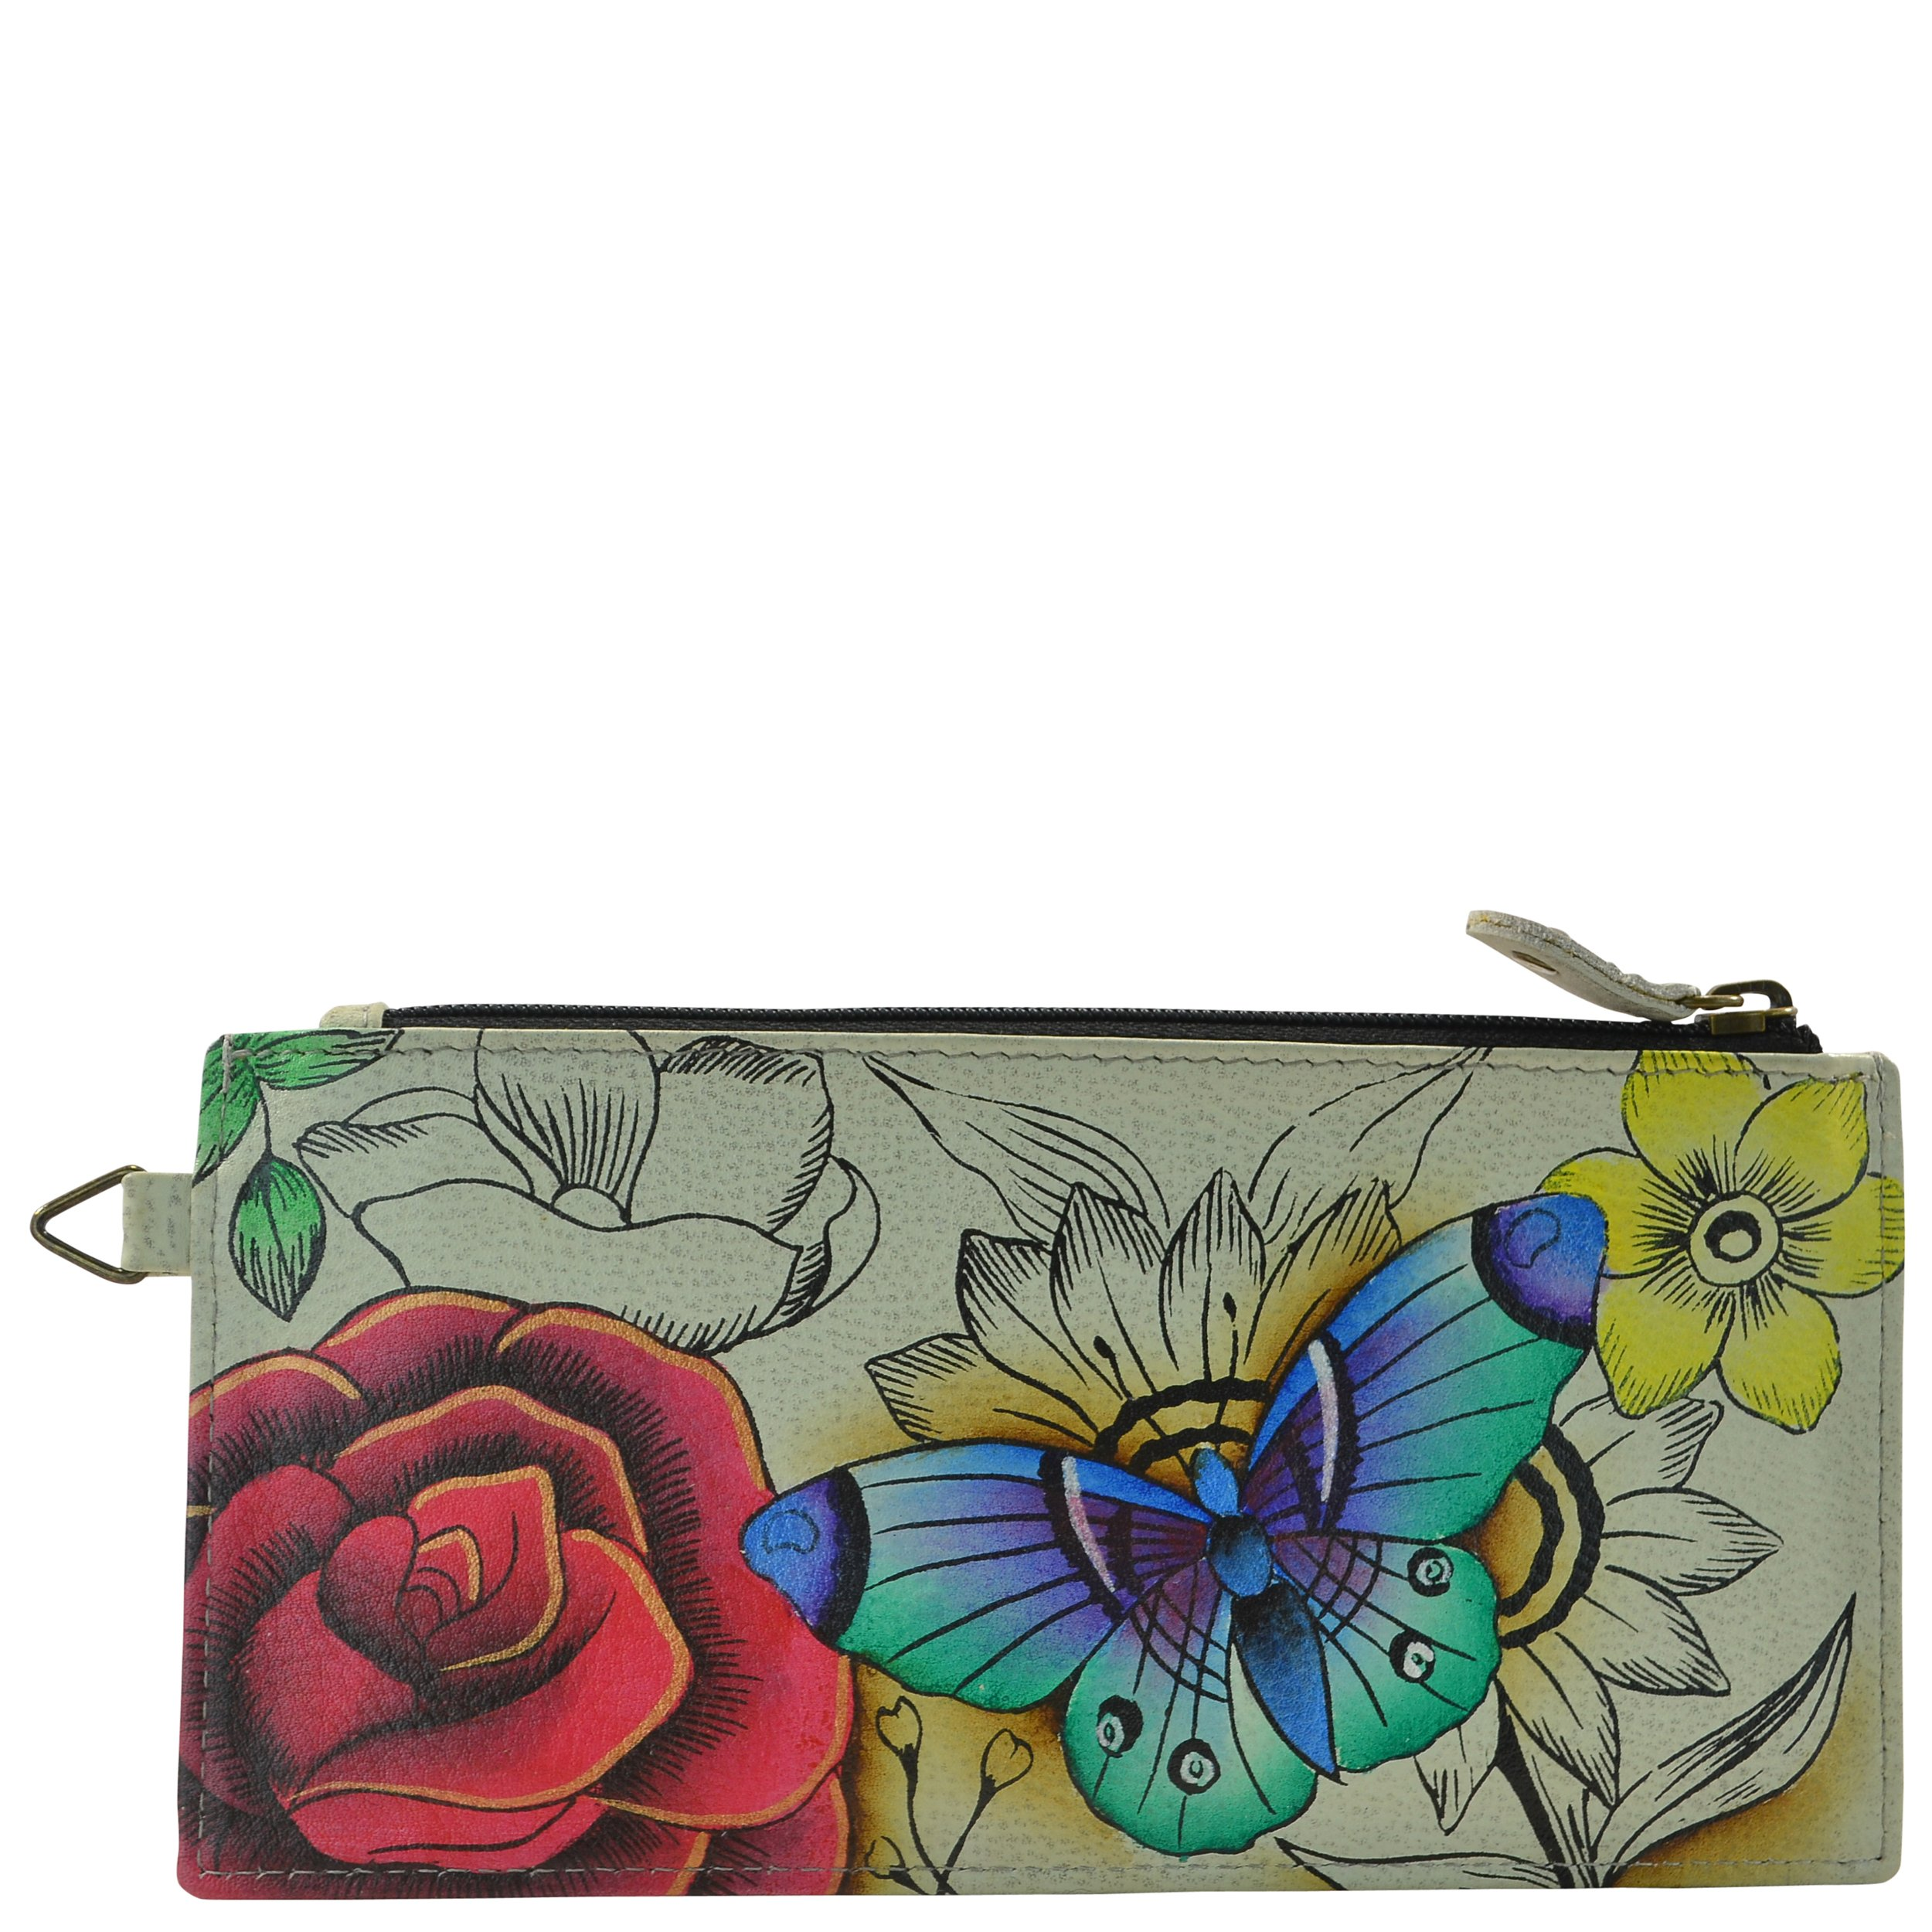 Anna by Anuschka Women's, Handpainted Leather Organizer Wallet,Floral Paradise, One Size